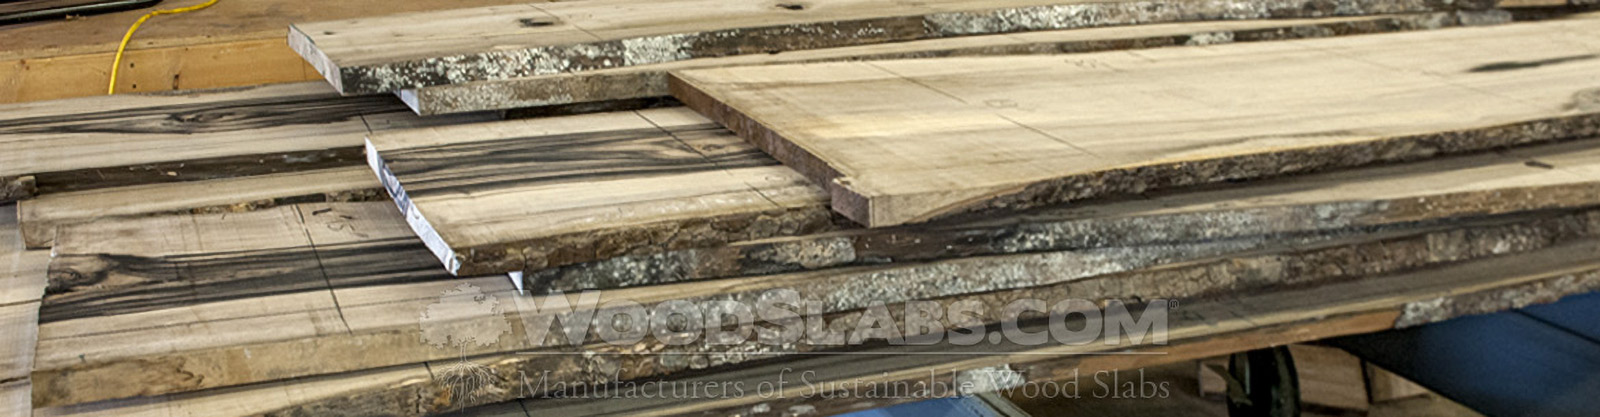 Persimmon wood slabs